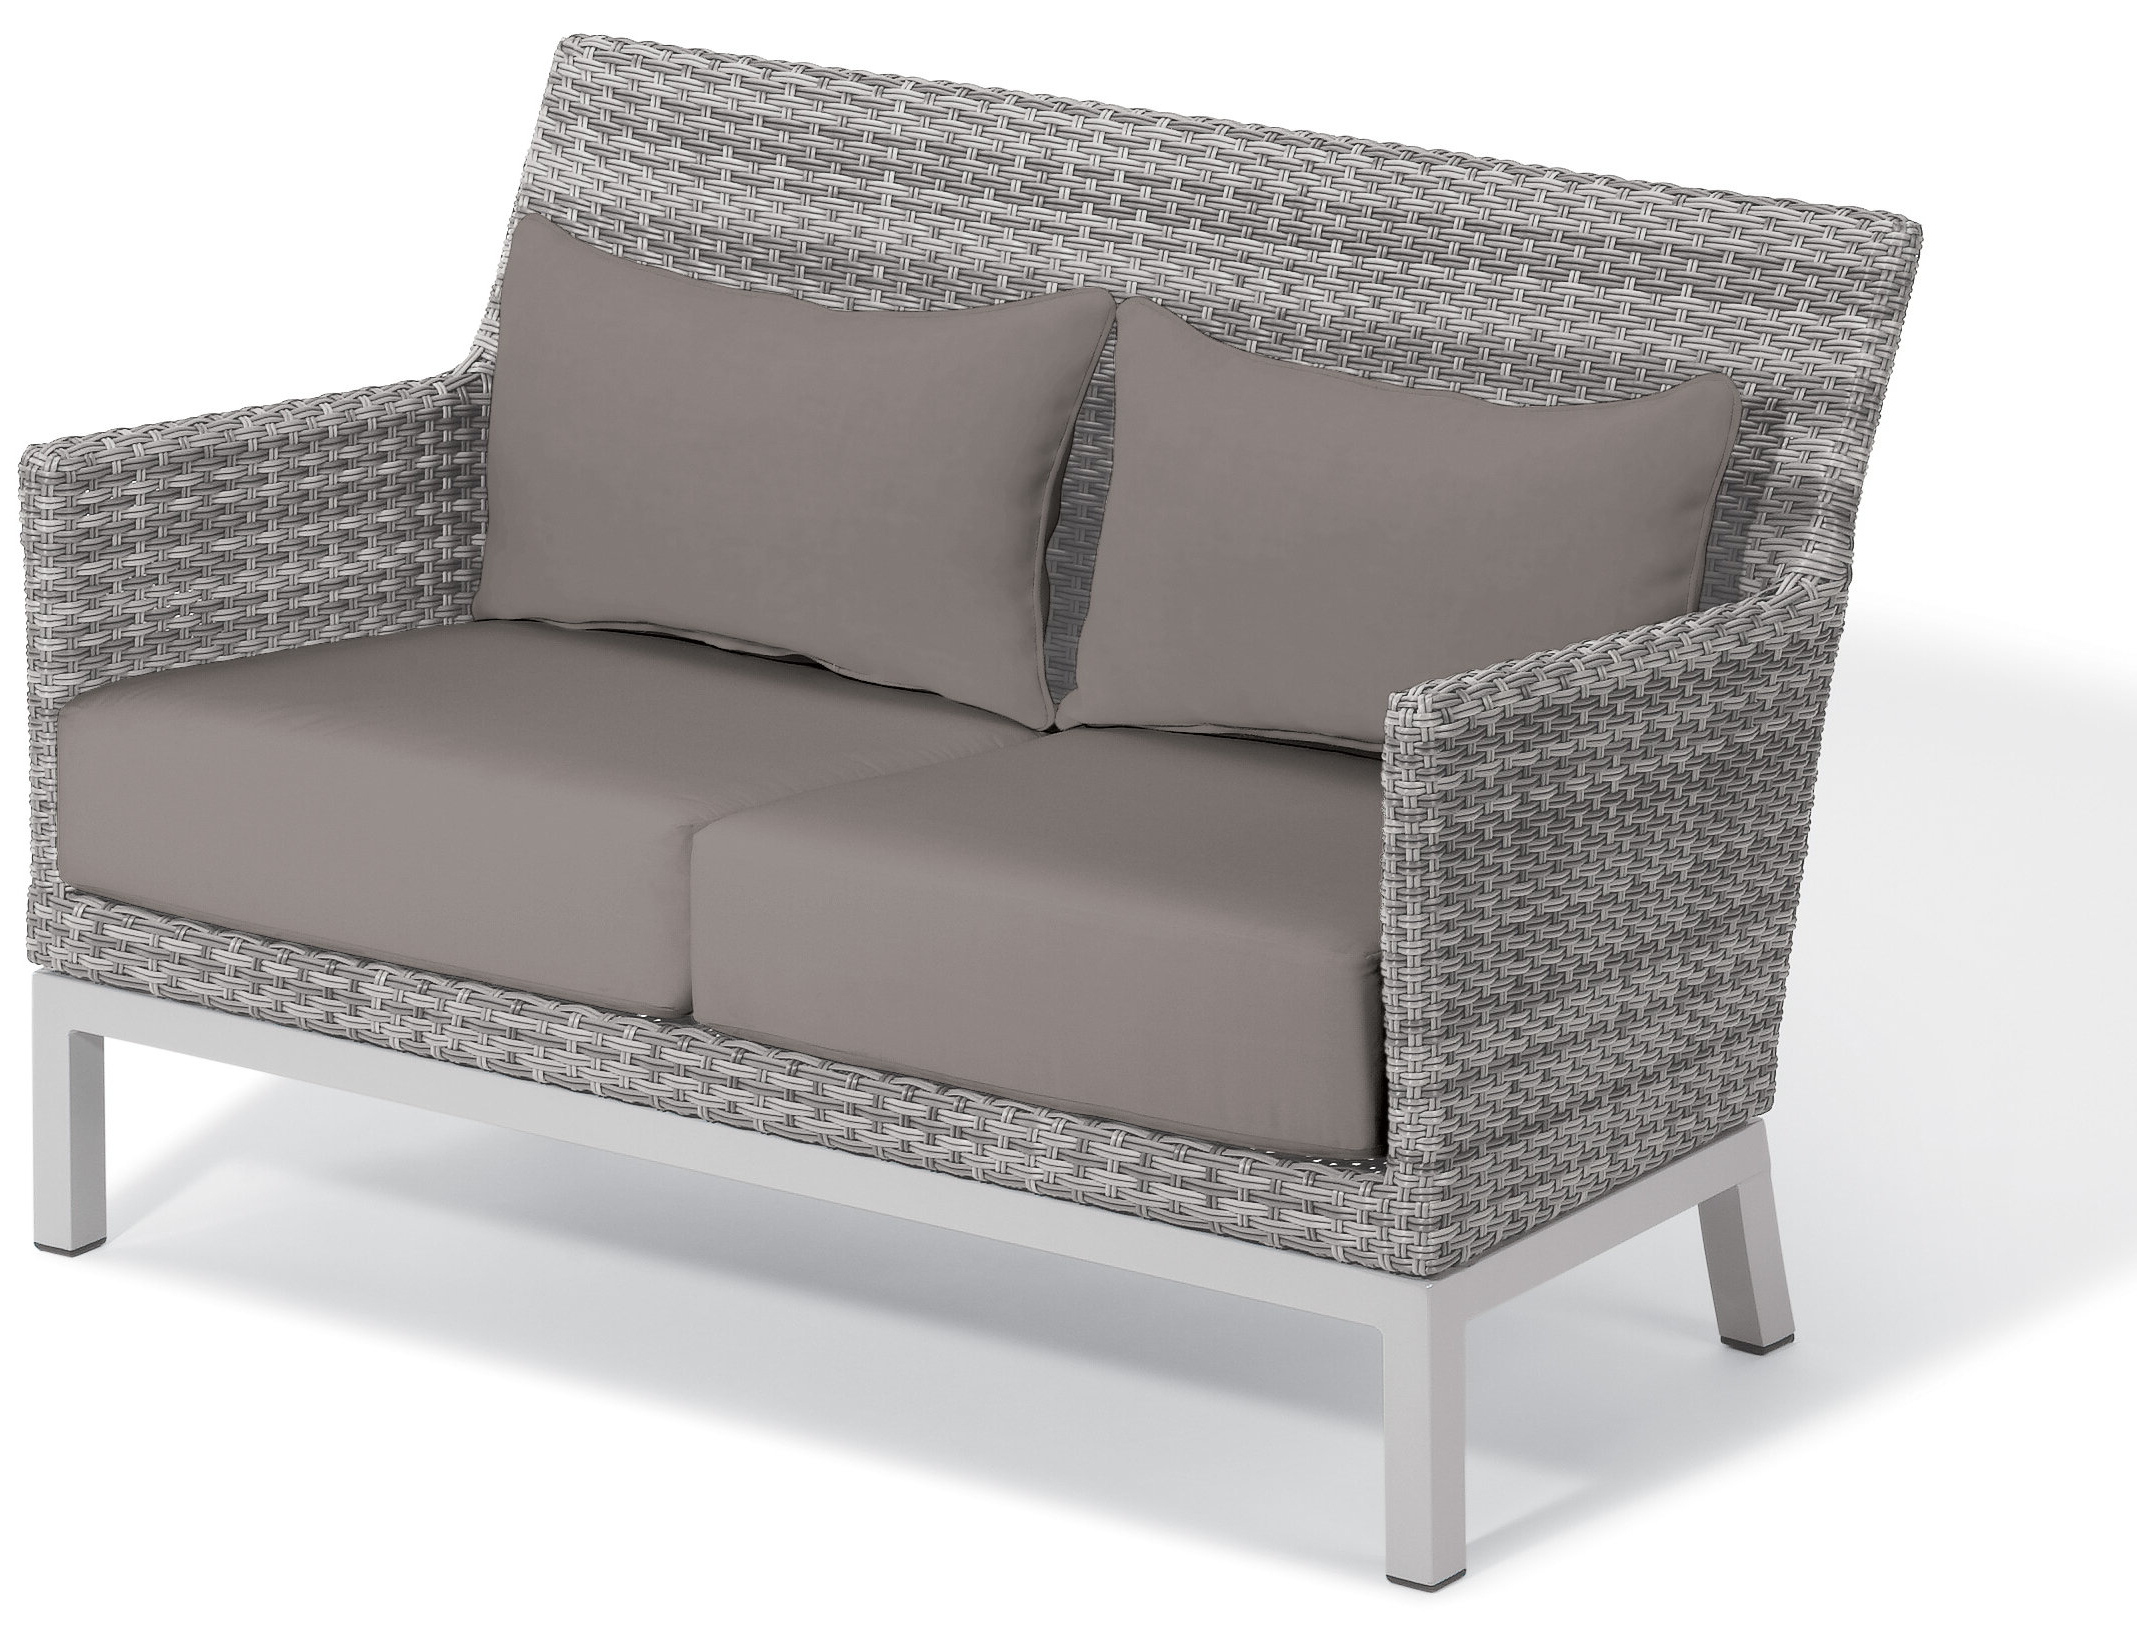 Saleem Loveseat With Cushions In Most Recent Saleem Loveseats With Cushions (View 16 of 25)